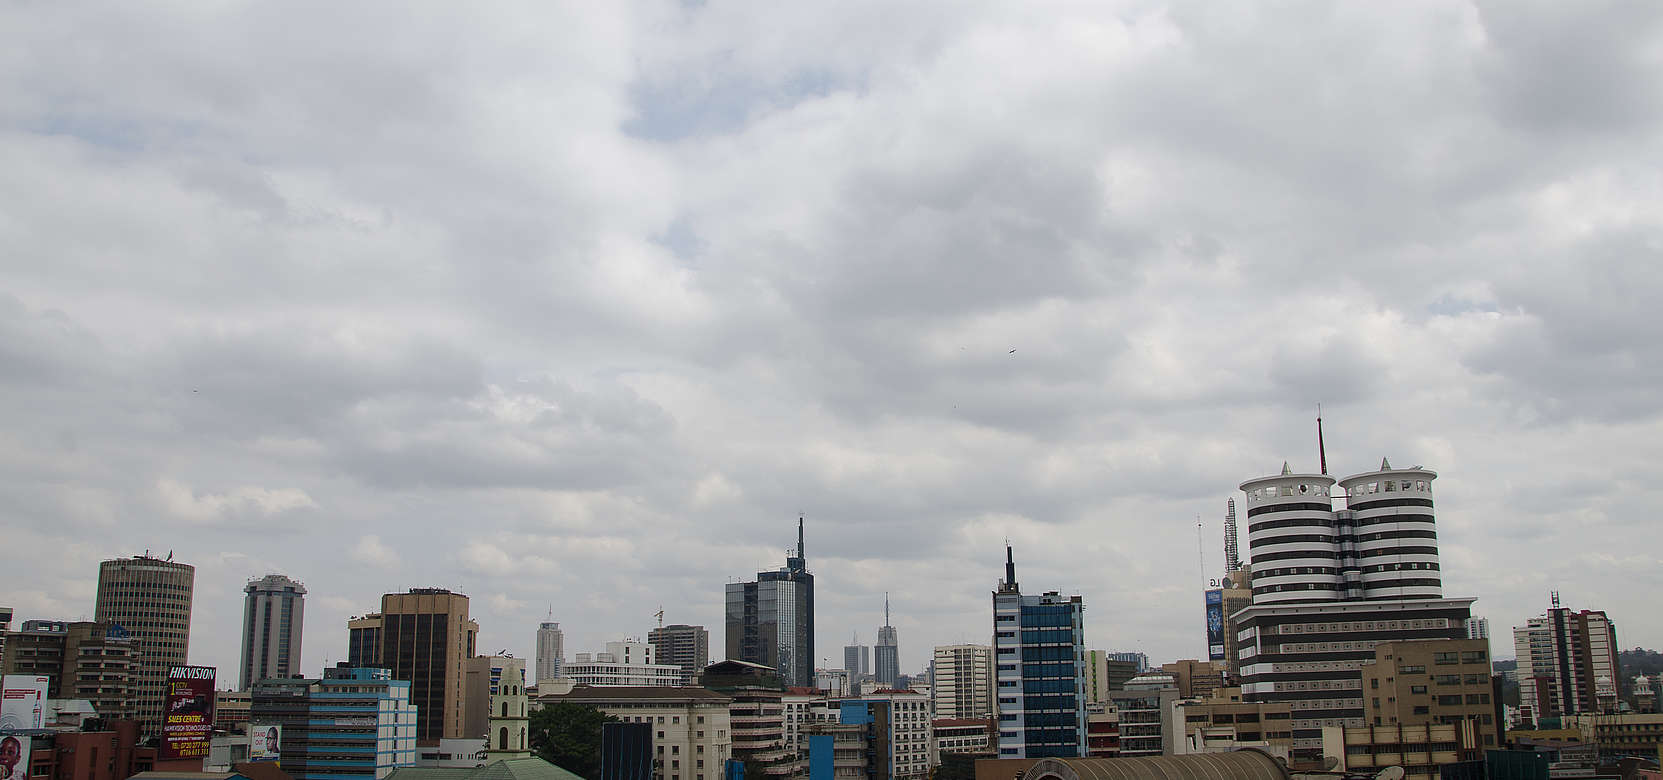 Nairobi_City_Decasa_Hotel_CBD